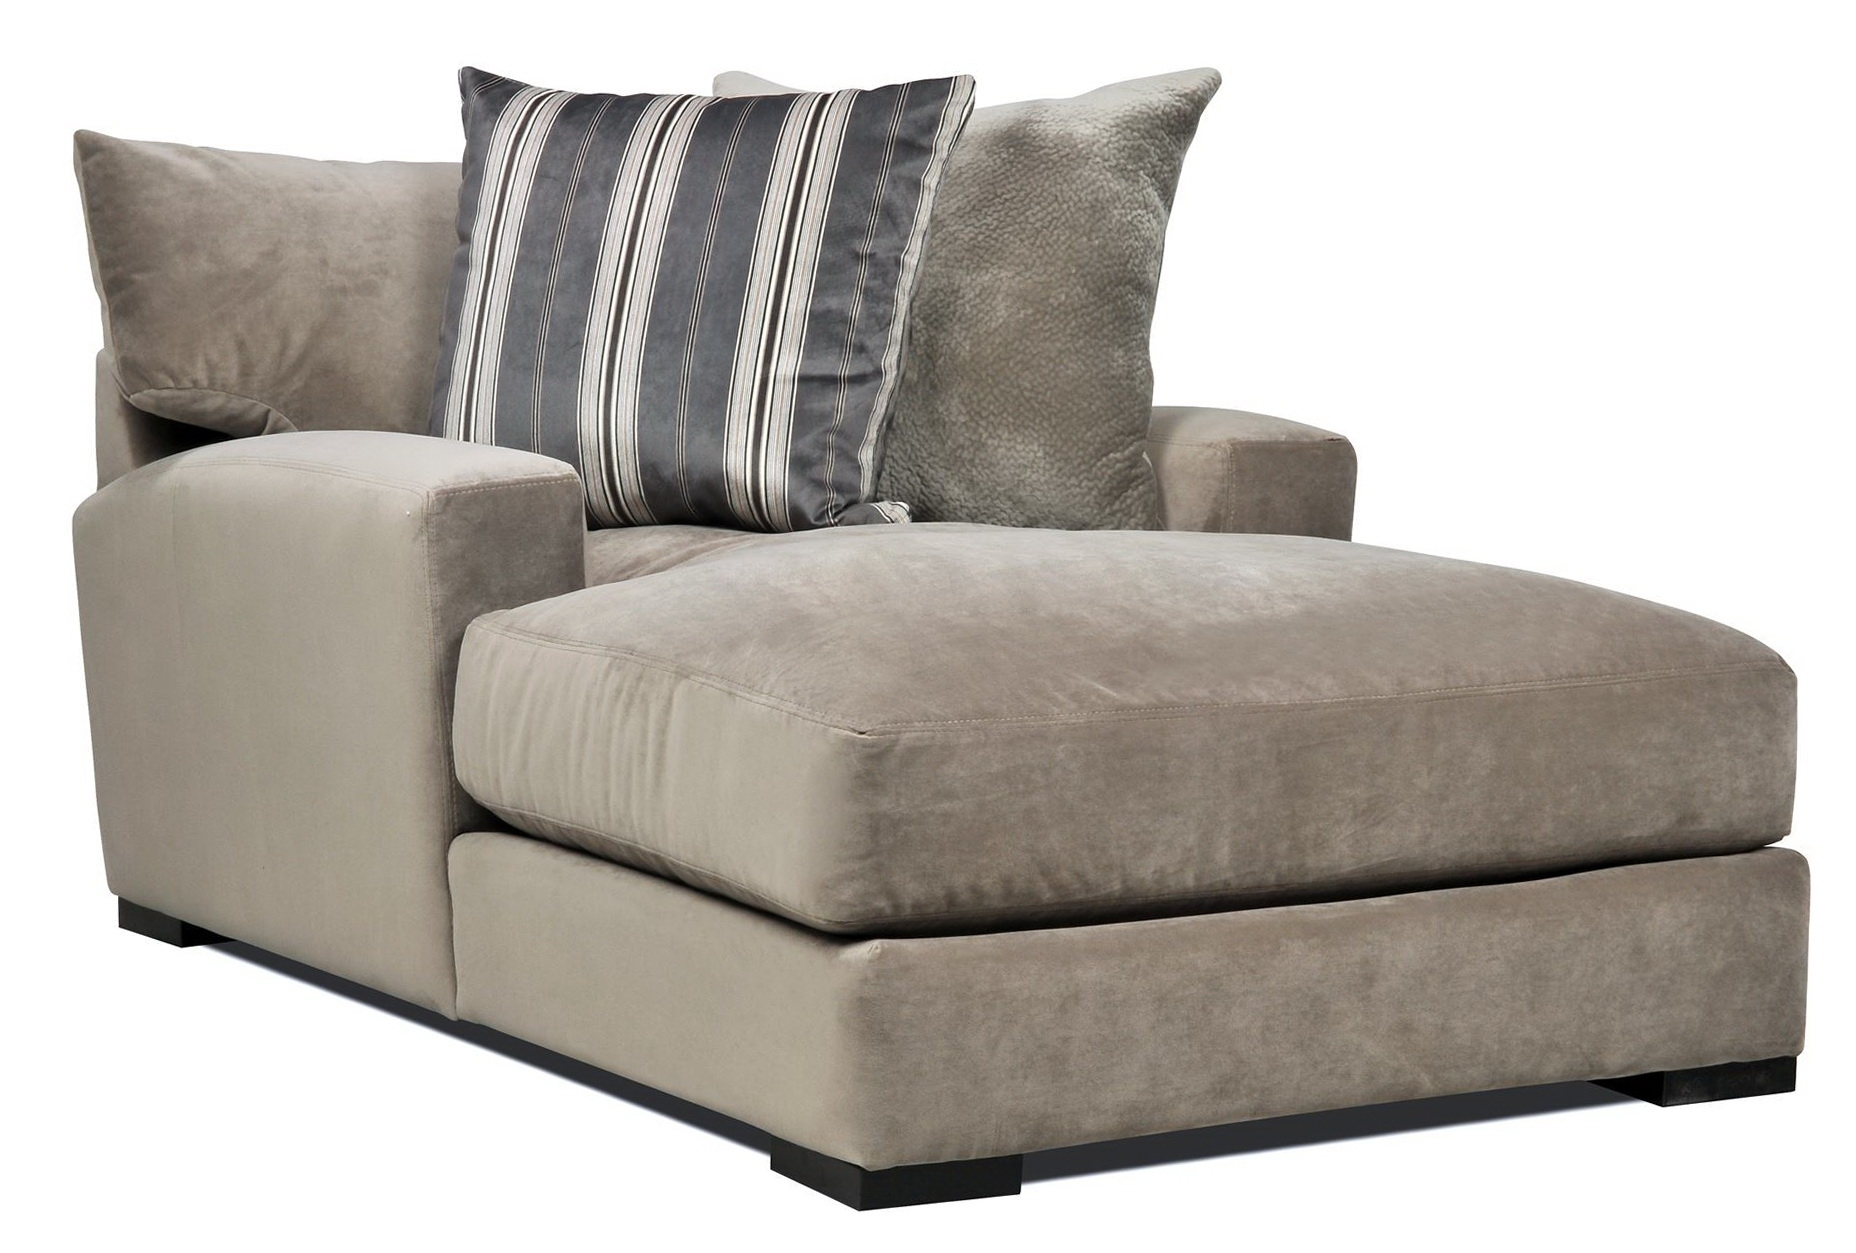 extra large chaise lounge ideas on foter